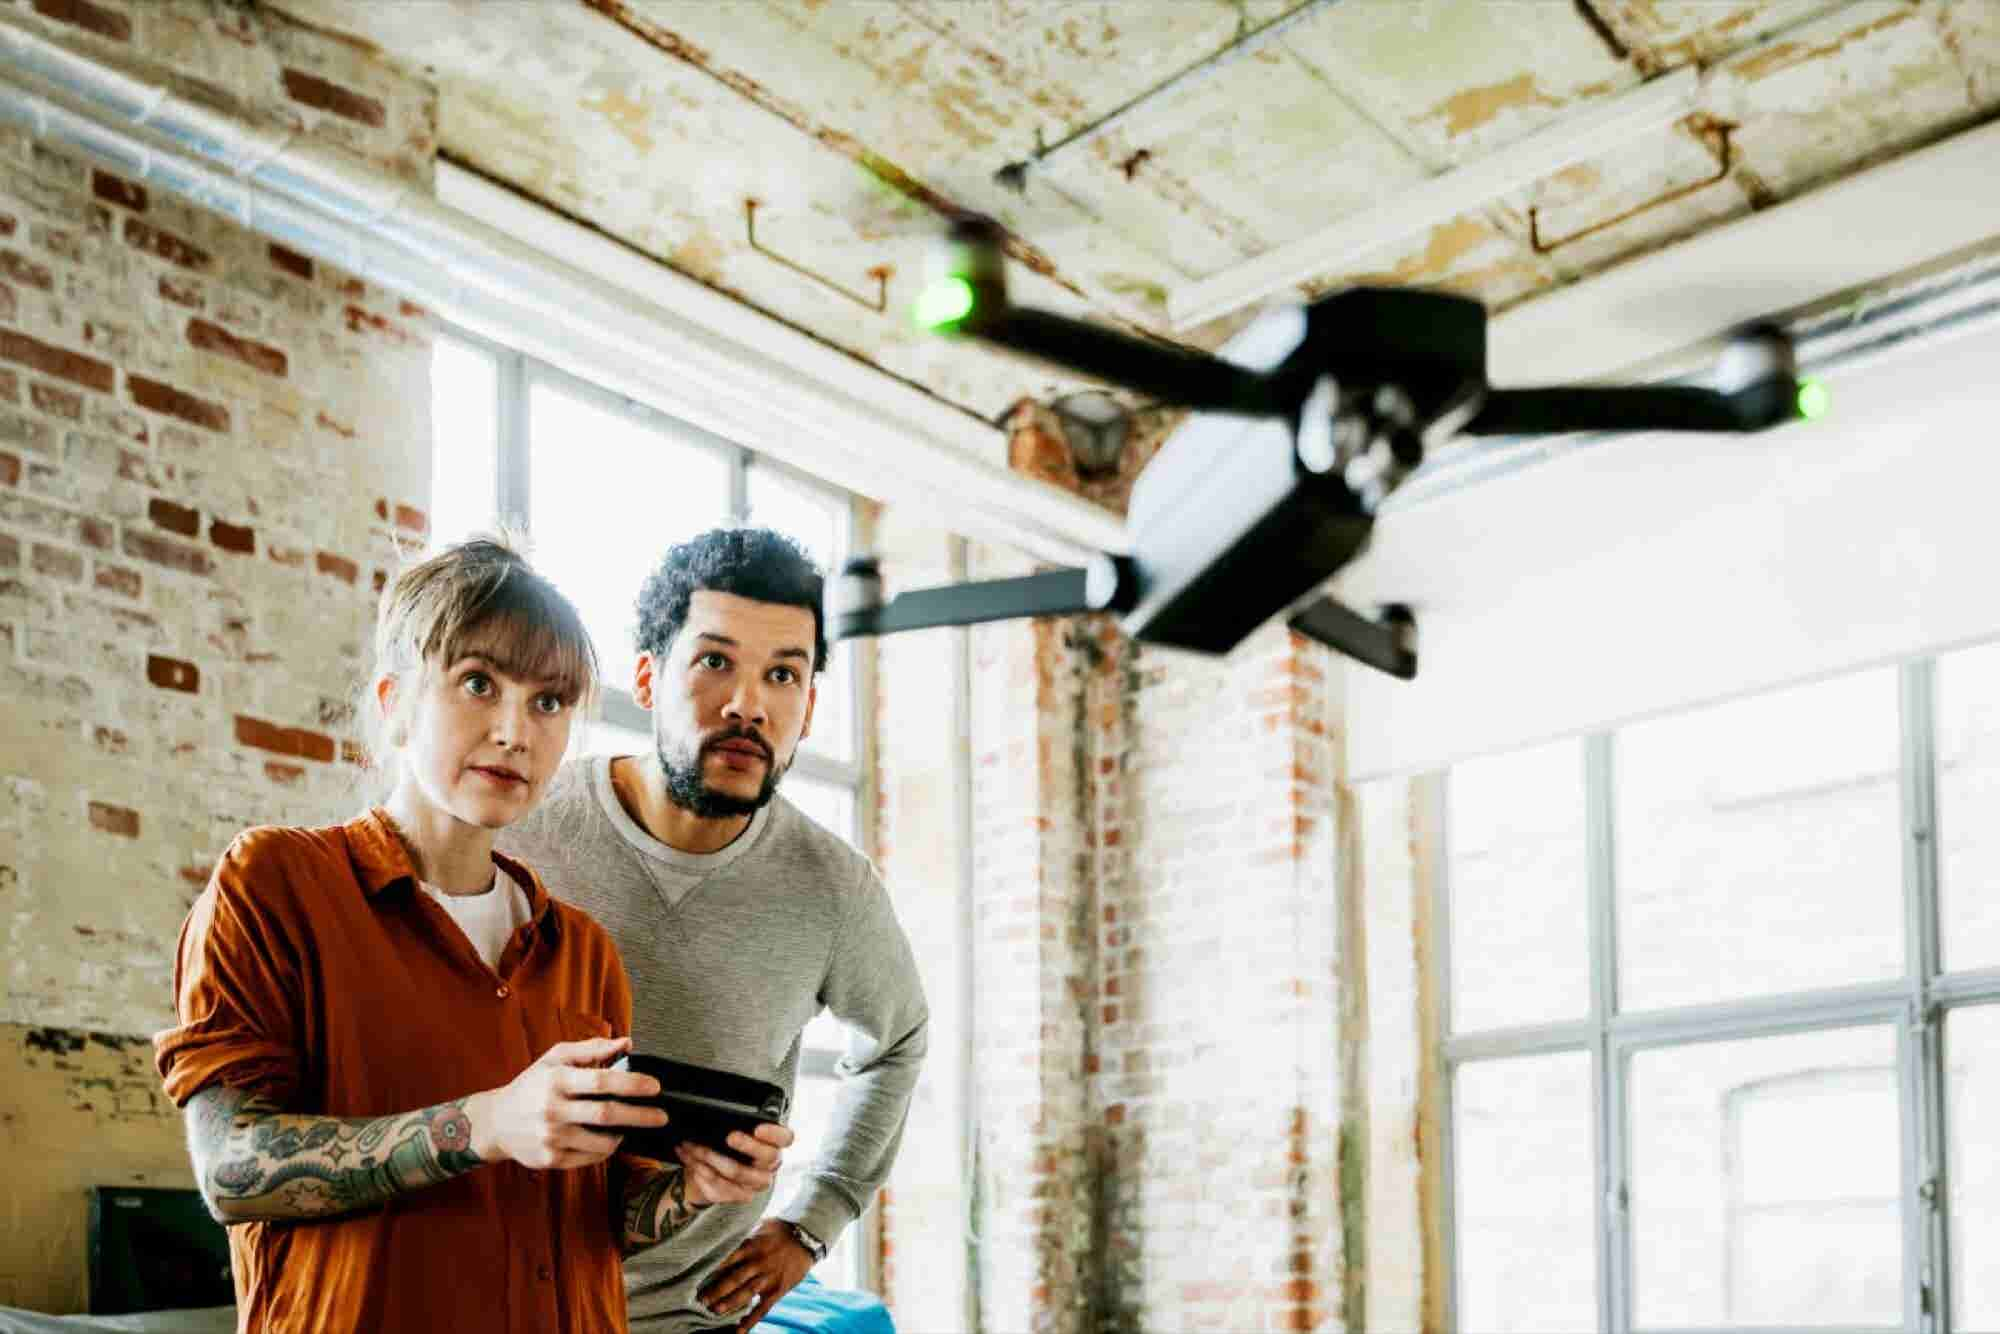 3 Ways Drone Startups Are Making Dangerous Workplaces Safer